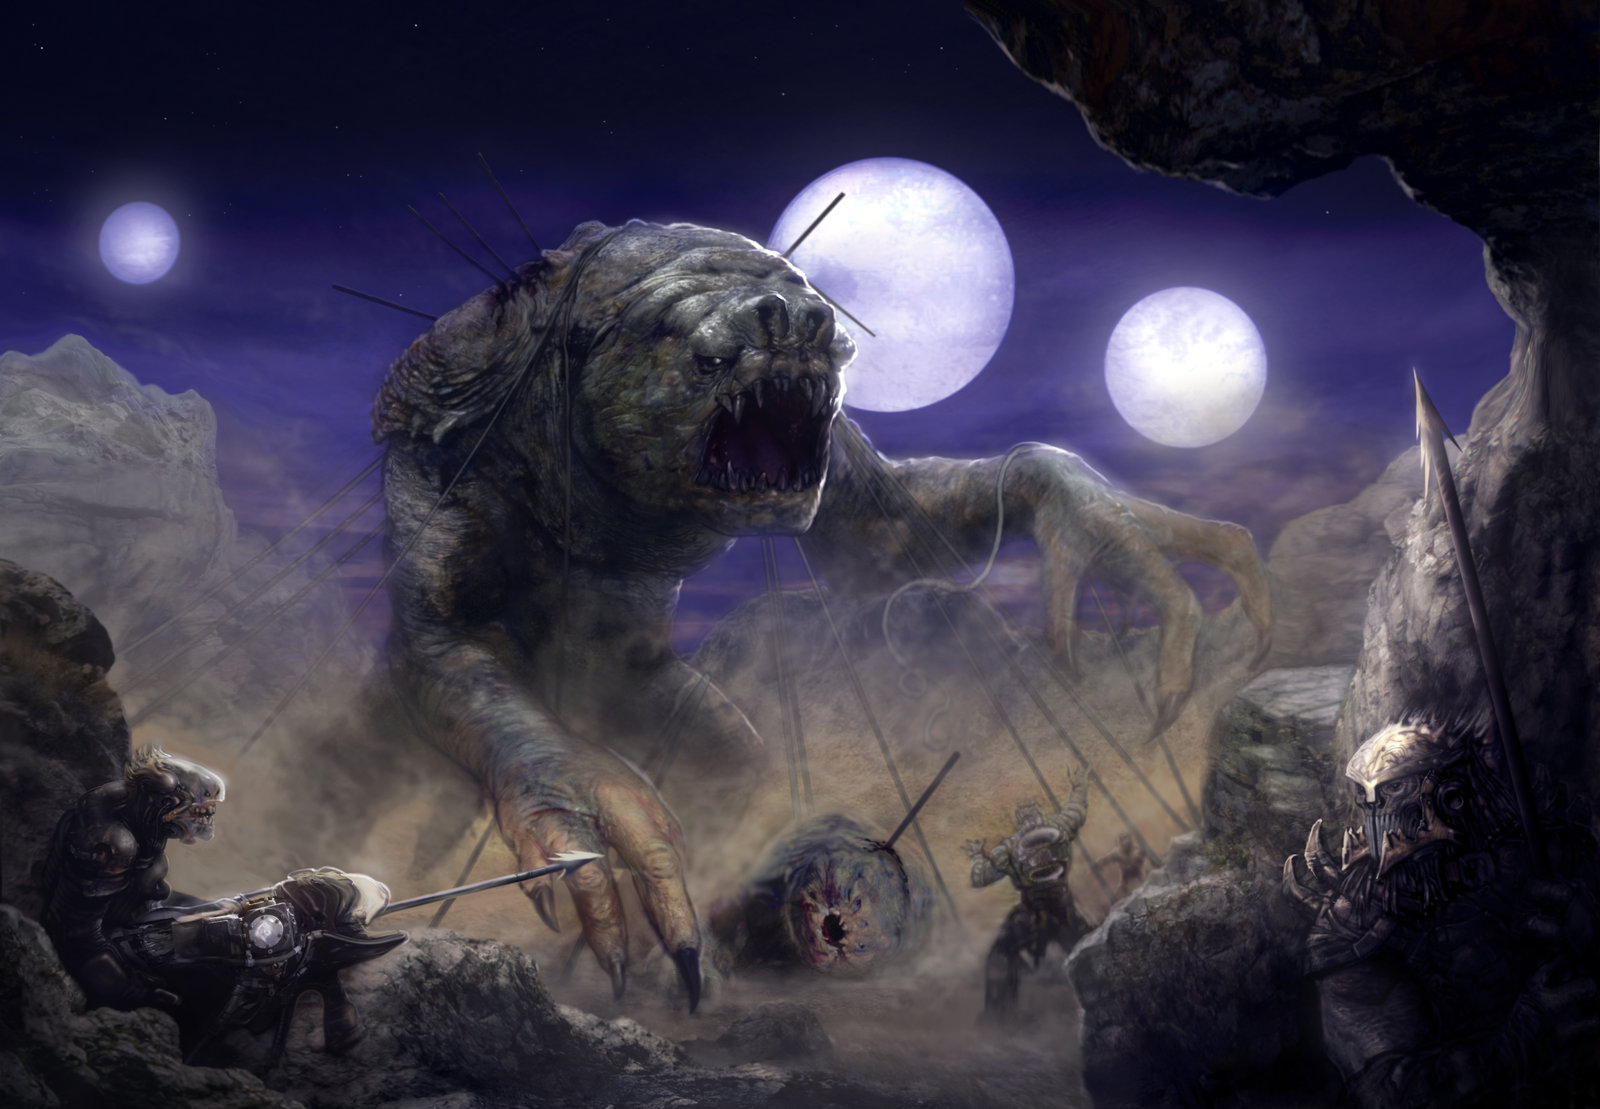 RANCOR-HUNTERS-by-LiamSharp-on-deviantART-wallpaper-wp34010242